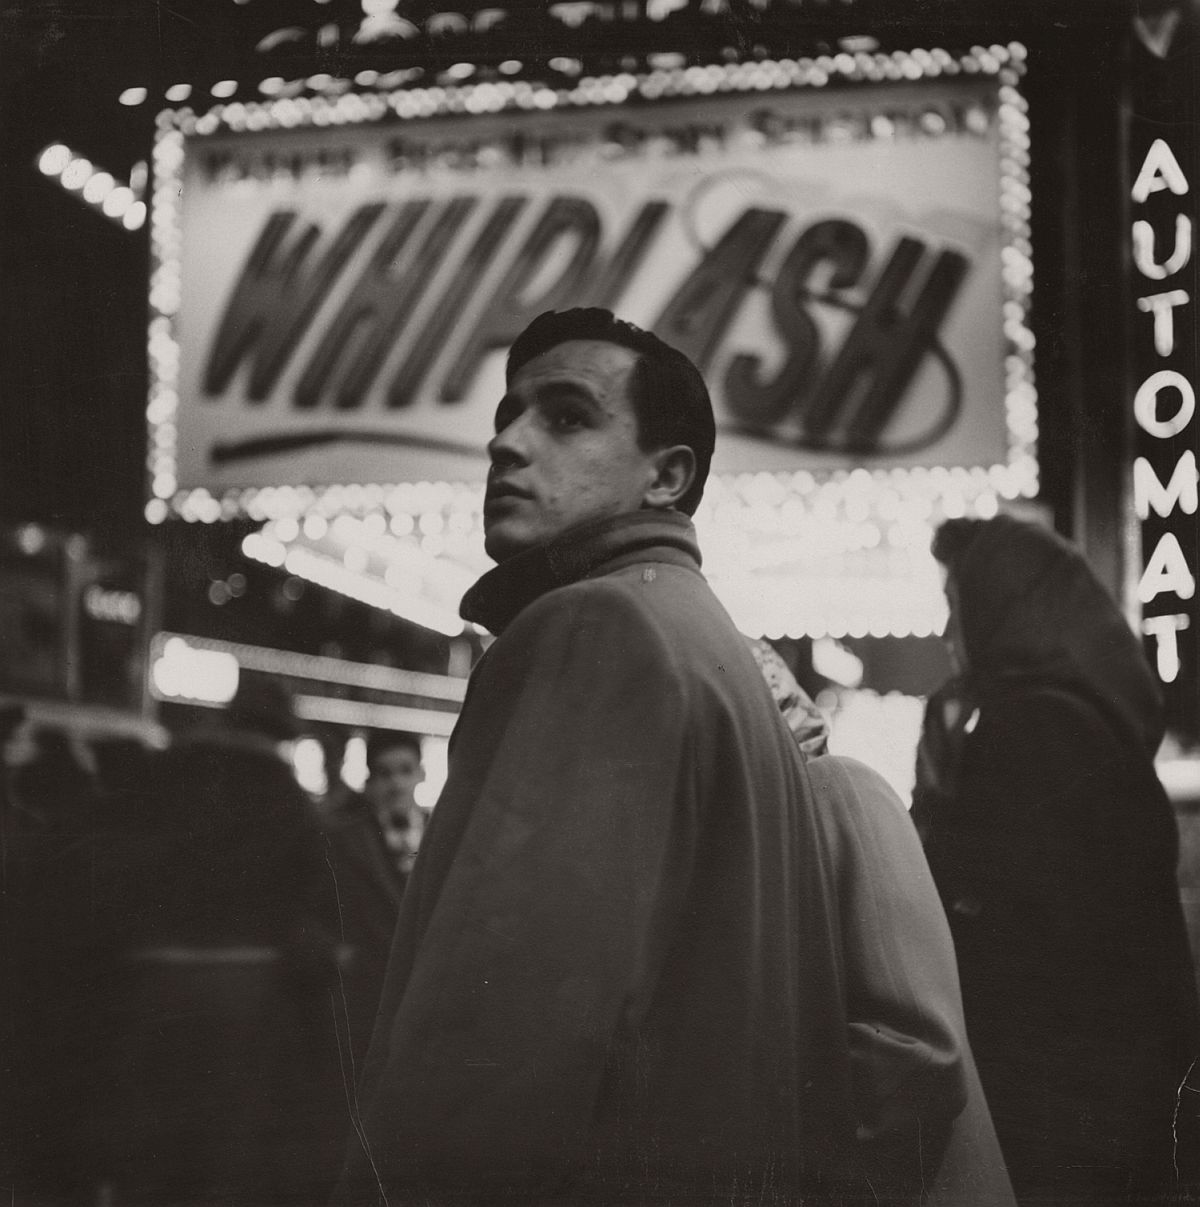 Man on Broadway, 1949